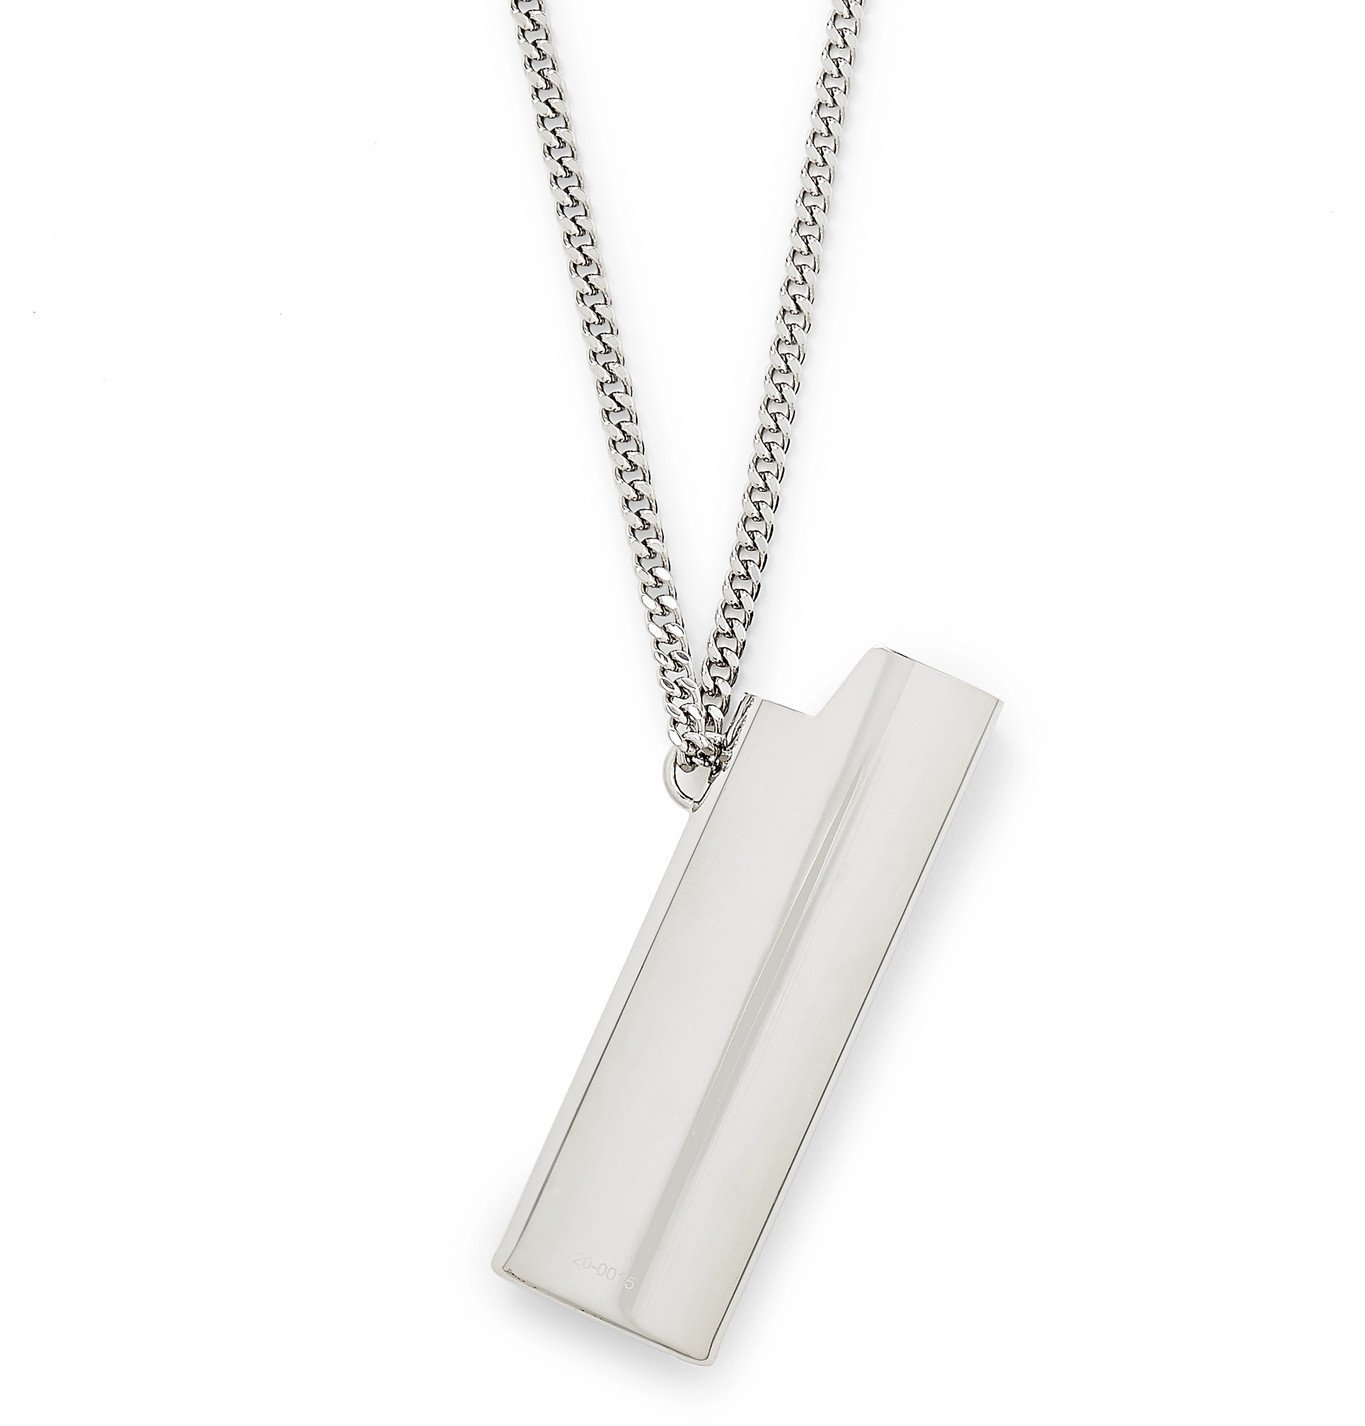 1017 ALYX 9SM - Logo-Embossed Silver-Tone Lighter Case Necklace - Silver